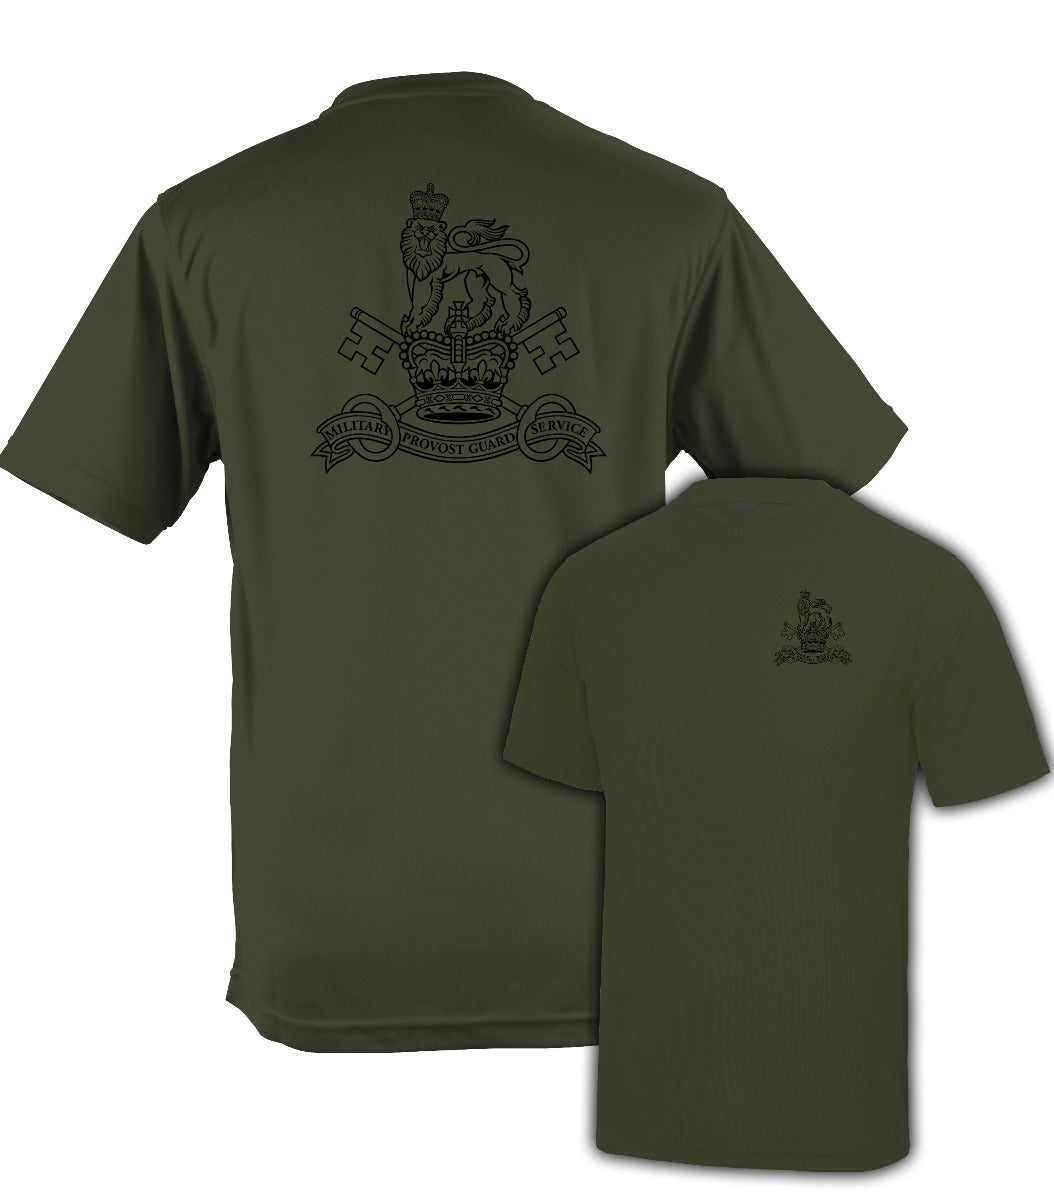 Fully Printed Military Provost Guard Service (MPGS) Wicking Fabric T-shirt